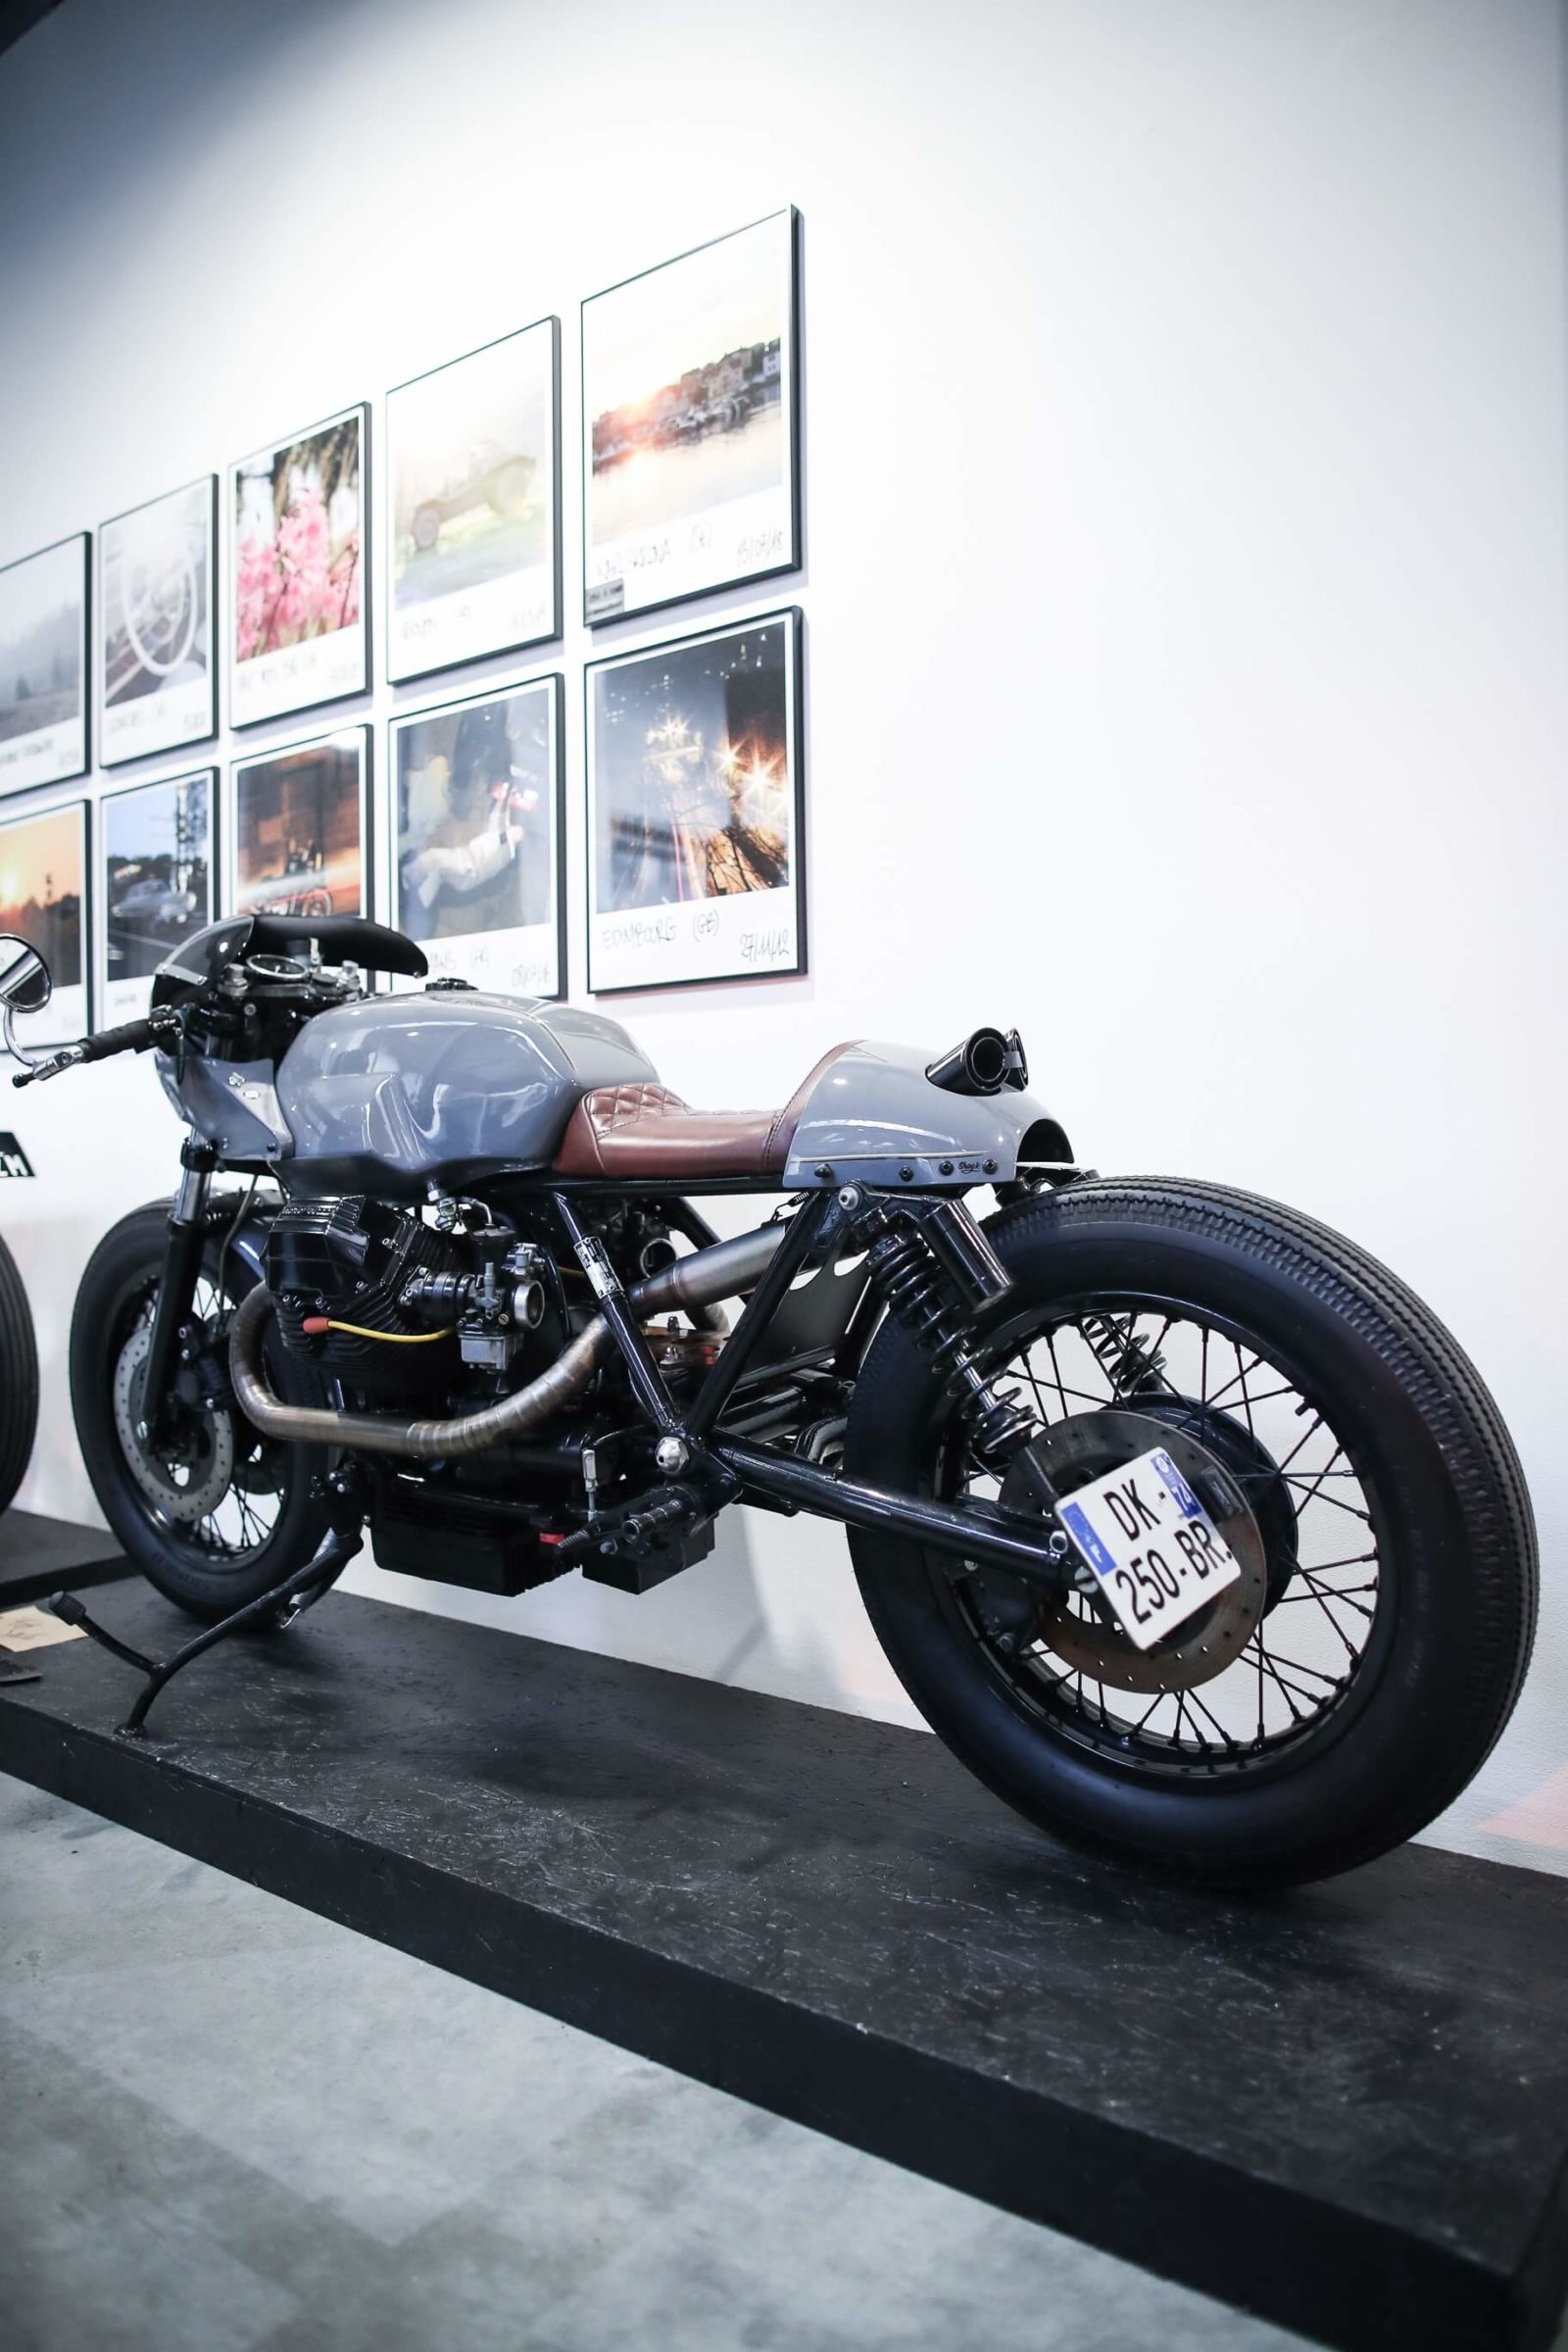 Lionel beylot photo moto Guzzi cafe racer paris bastille